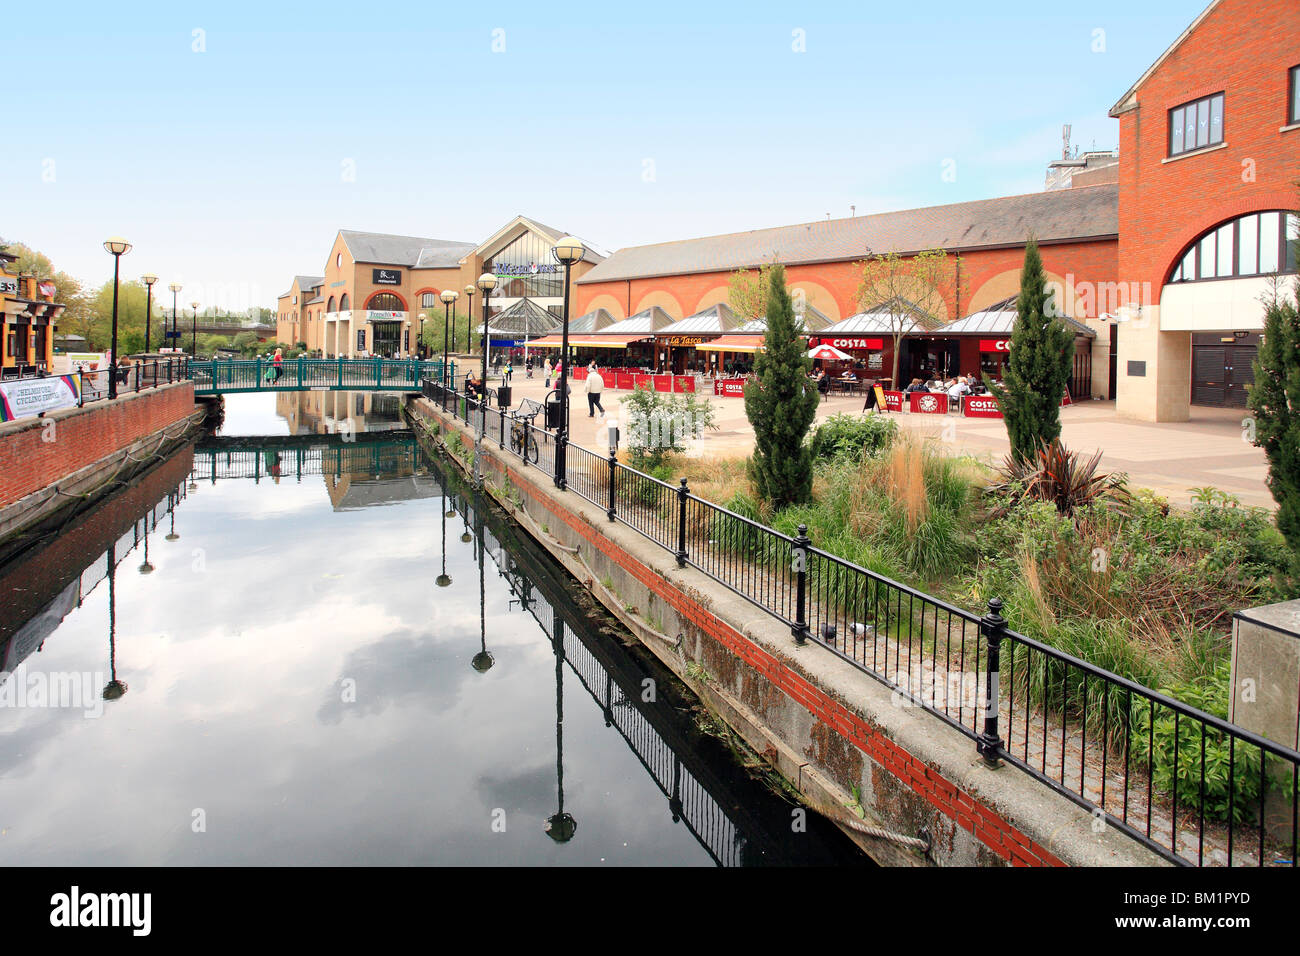 Chelmer Meadows shopping center in Chelmsford Essex - Stock Image